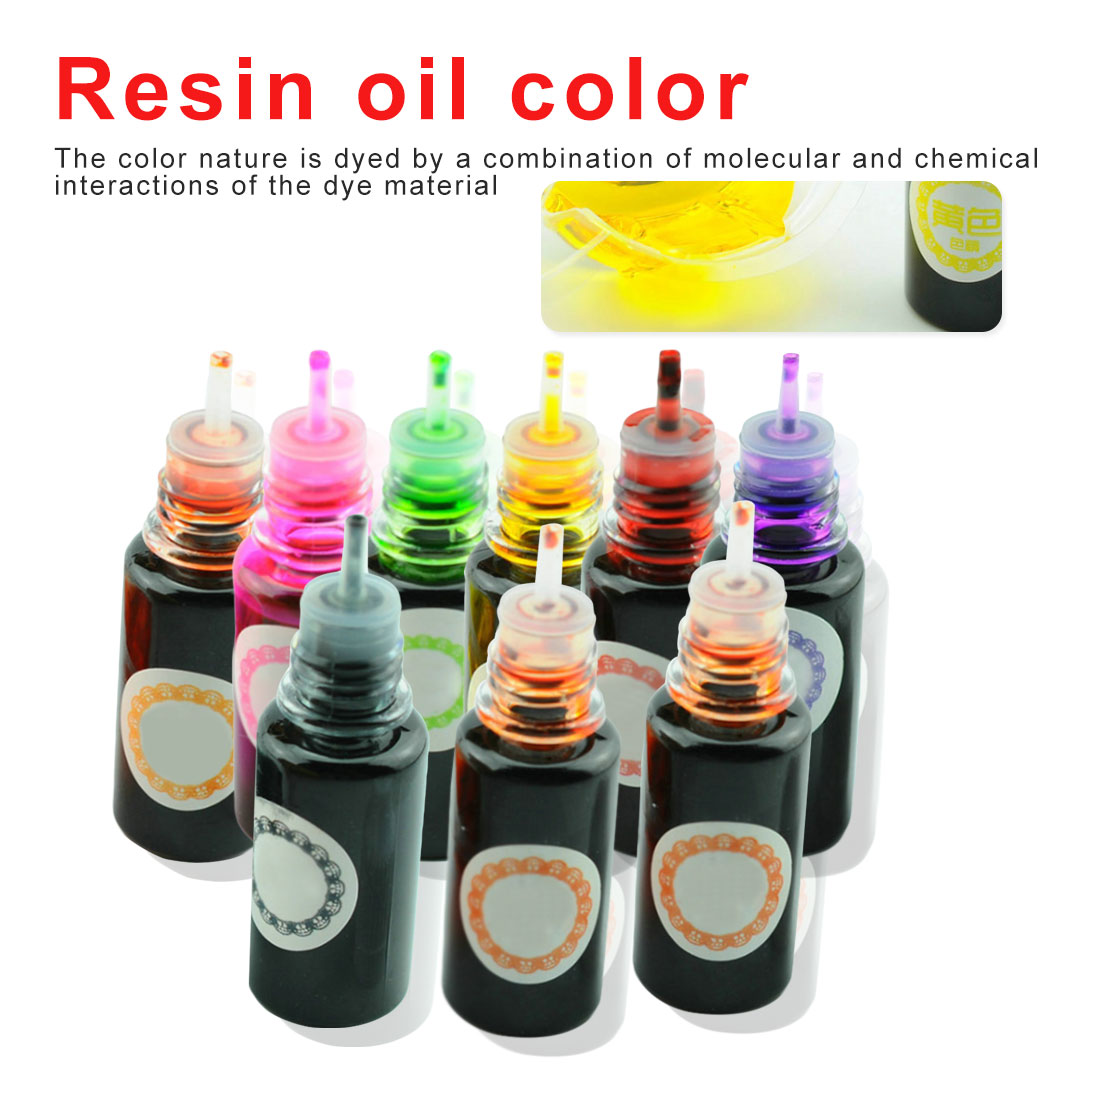 1 Pcs 10g Liquid Coloring Dye UV Resin Glue Pigment Color DIY Jewelry Making Crafts For Drop Ship